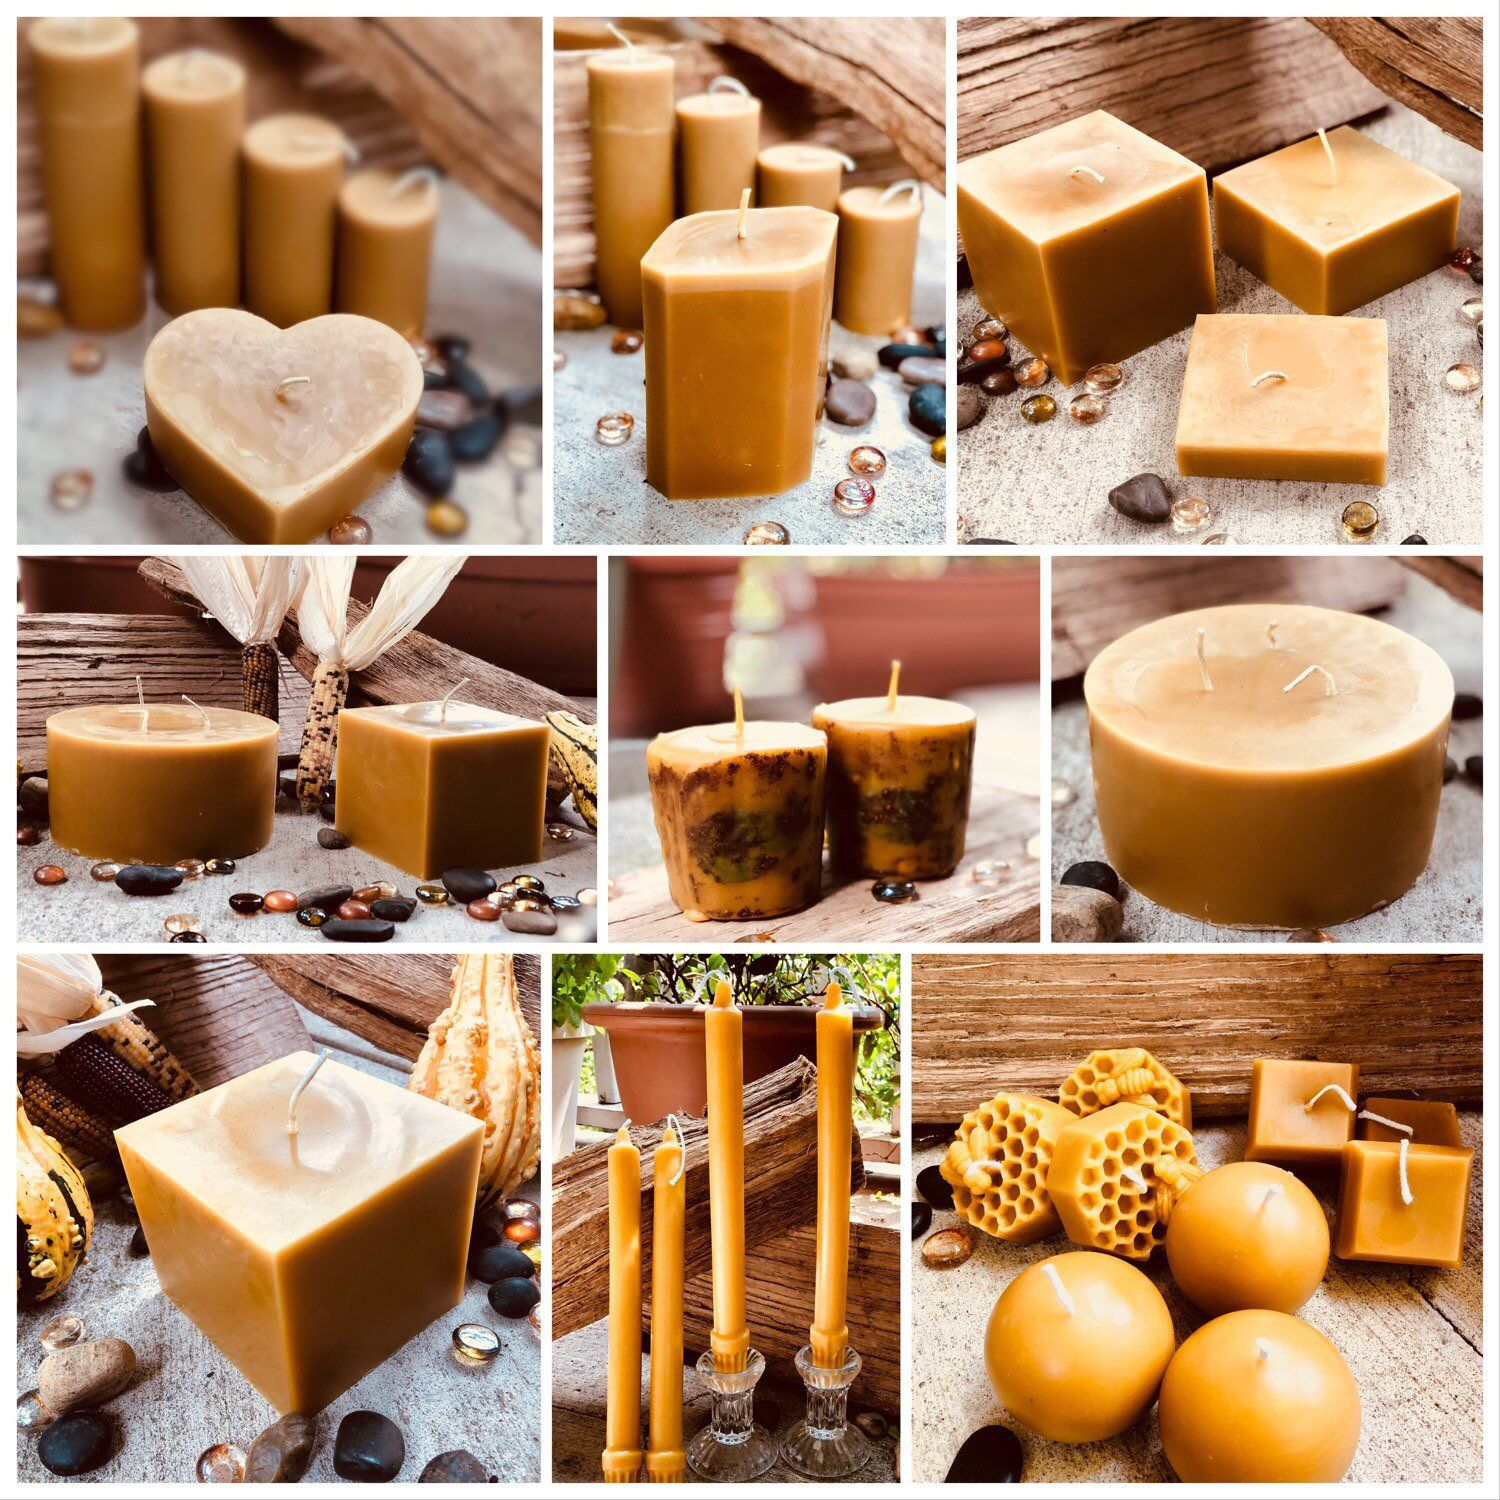 100 Pure Beeswax Heart Shaped Candle Large 4 Heart Etsy In 2020 Pure Beeswax Candles Beeswax Candles 100 Pure Beeswax Candles